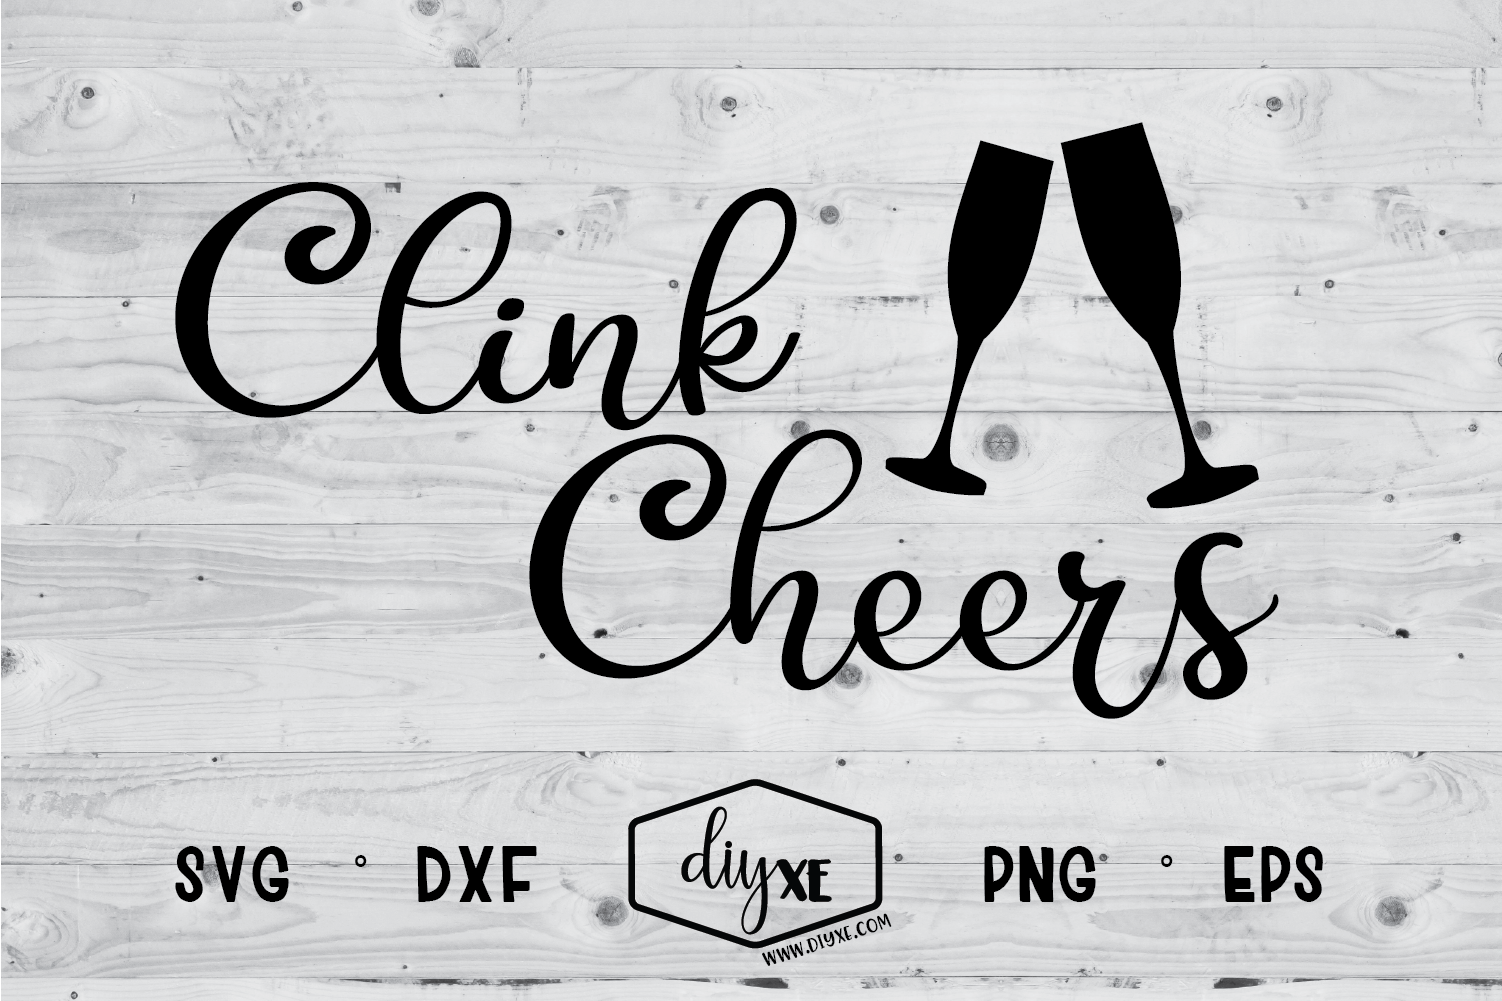 Clink Cheers Cheer, School design, Silhouette